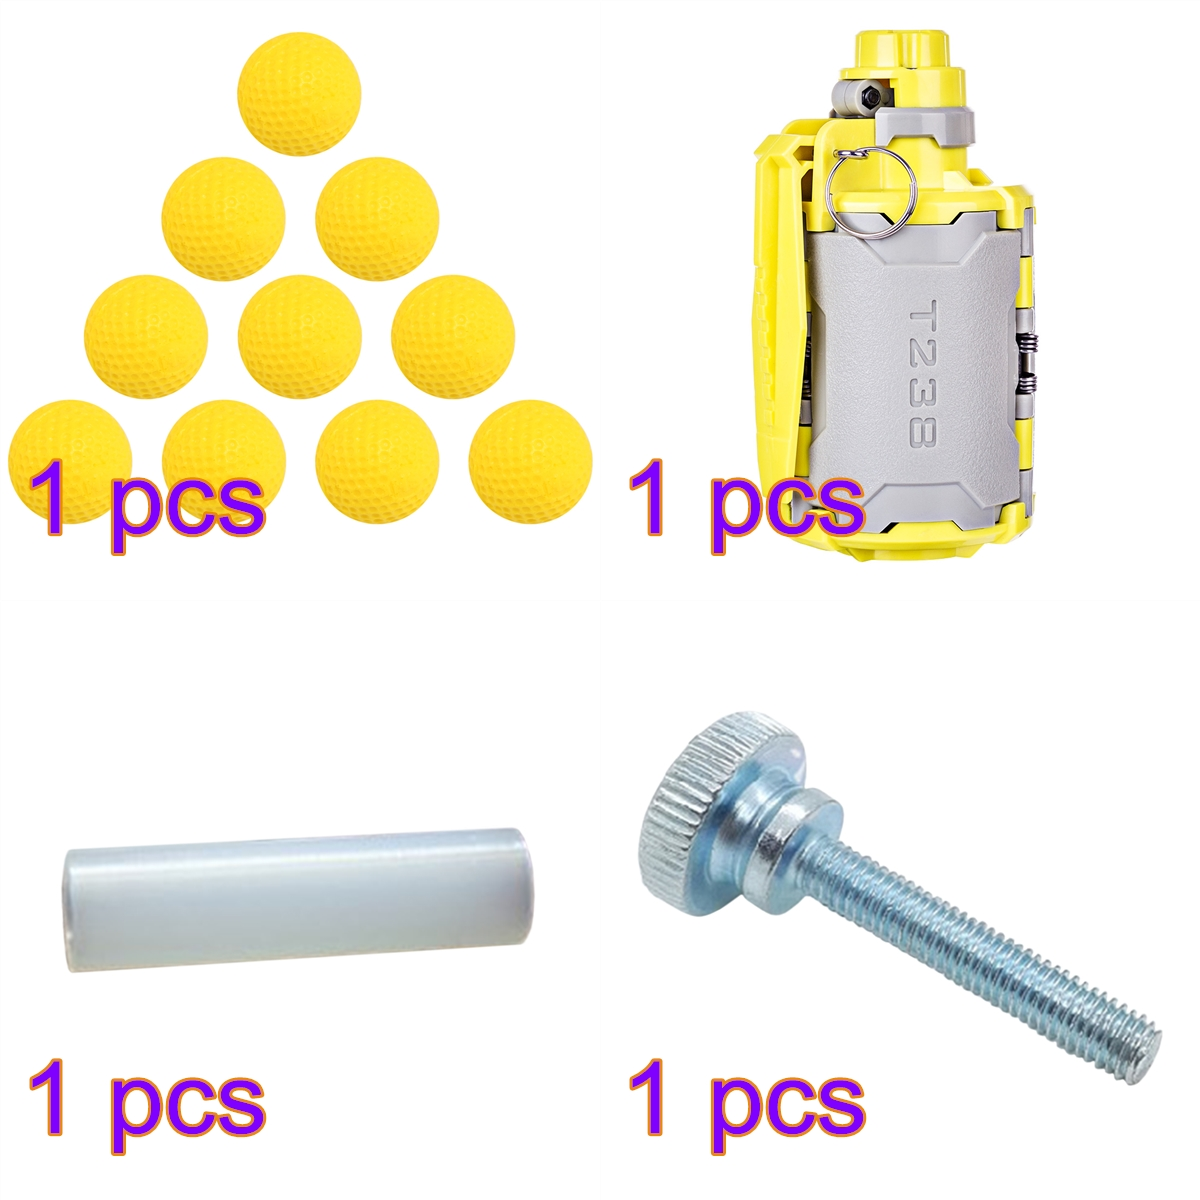 <font><b>T238</b></font> <font><b>V2</b></font> Large Capacity Water Bomb for Gel Ball BBs Airsoft Wargame with Hand Screw Standoff /Spacer Screw Nut /10pcs Soft Bullet image